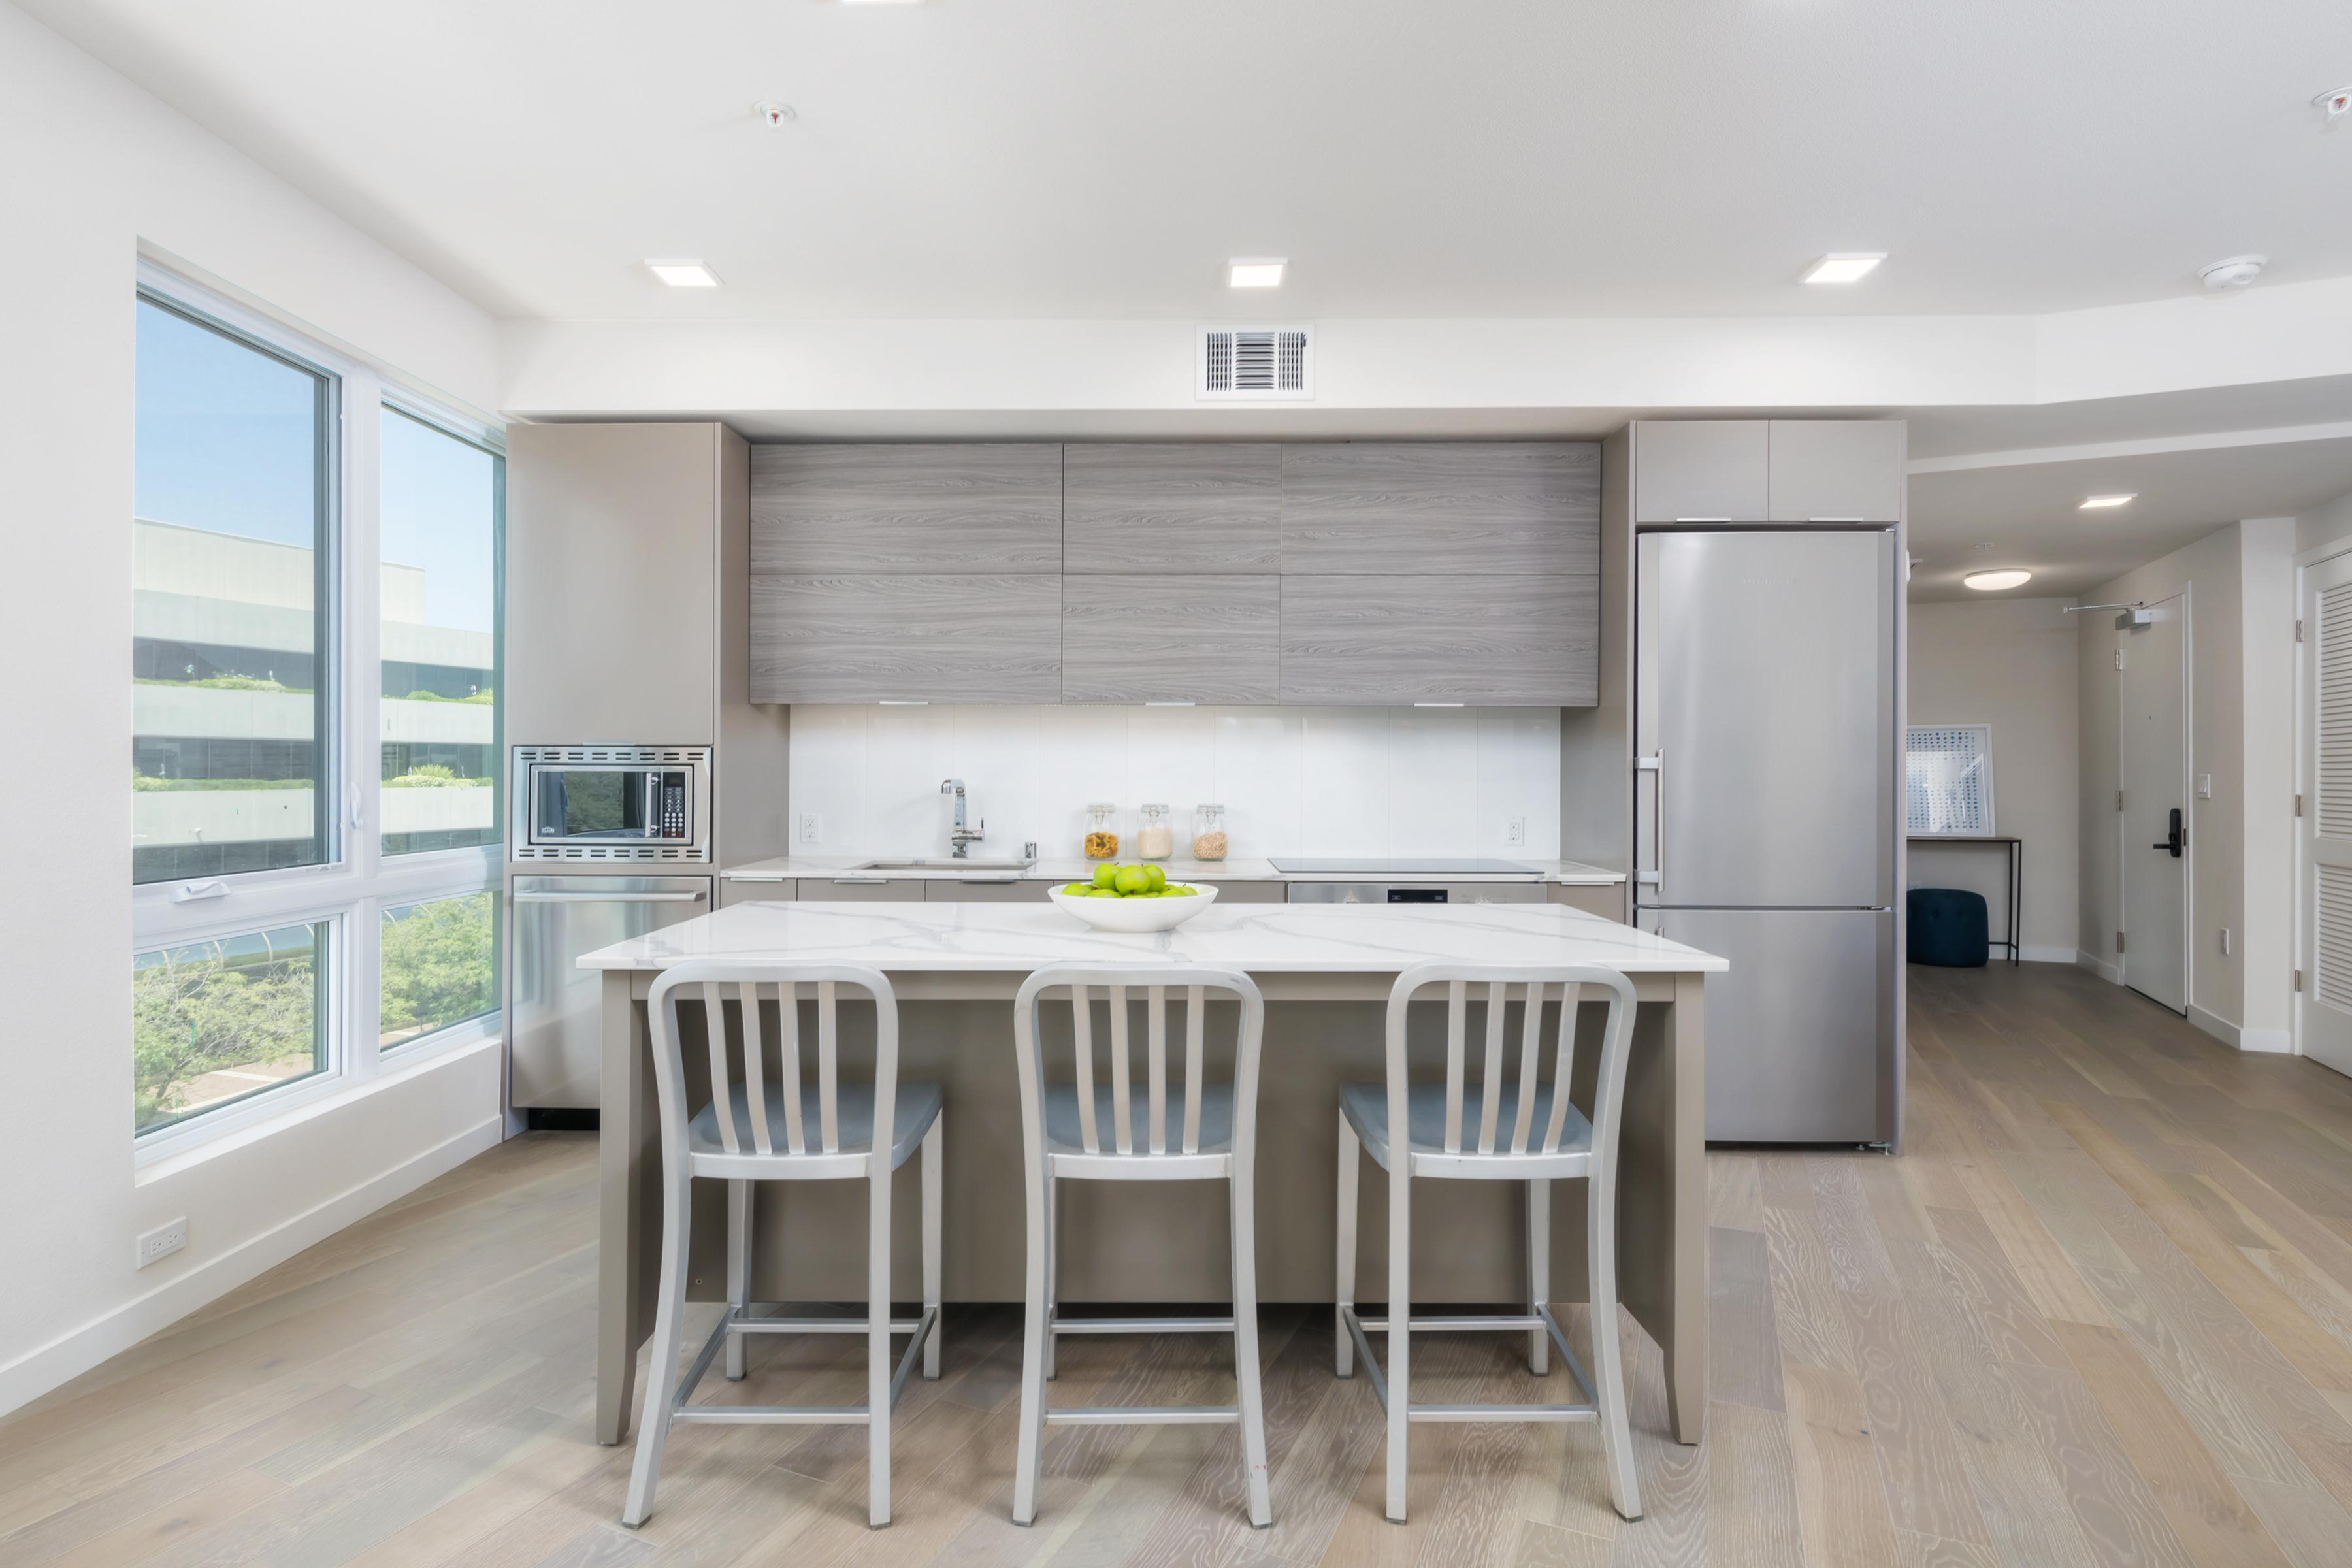 Kitchen featured in the 2b By The Address Company in Oakland-Alameda, CA